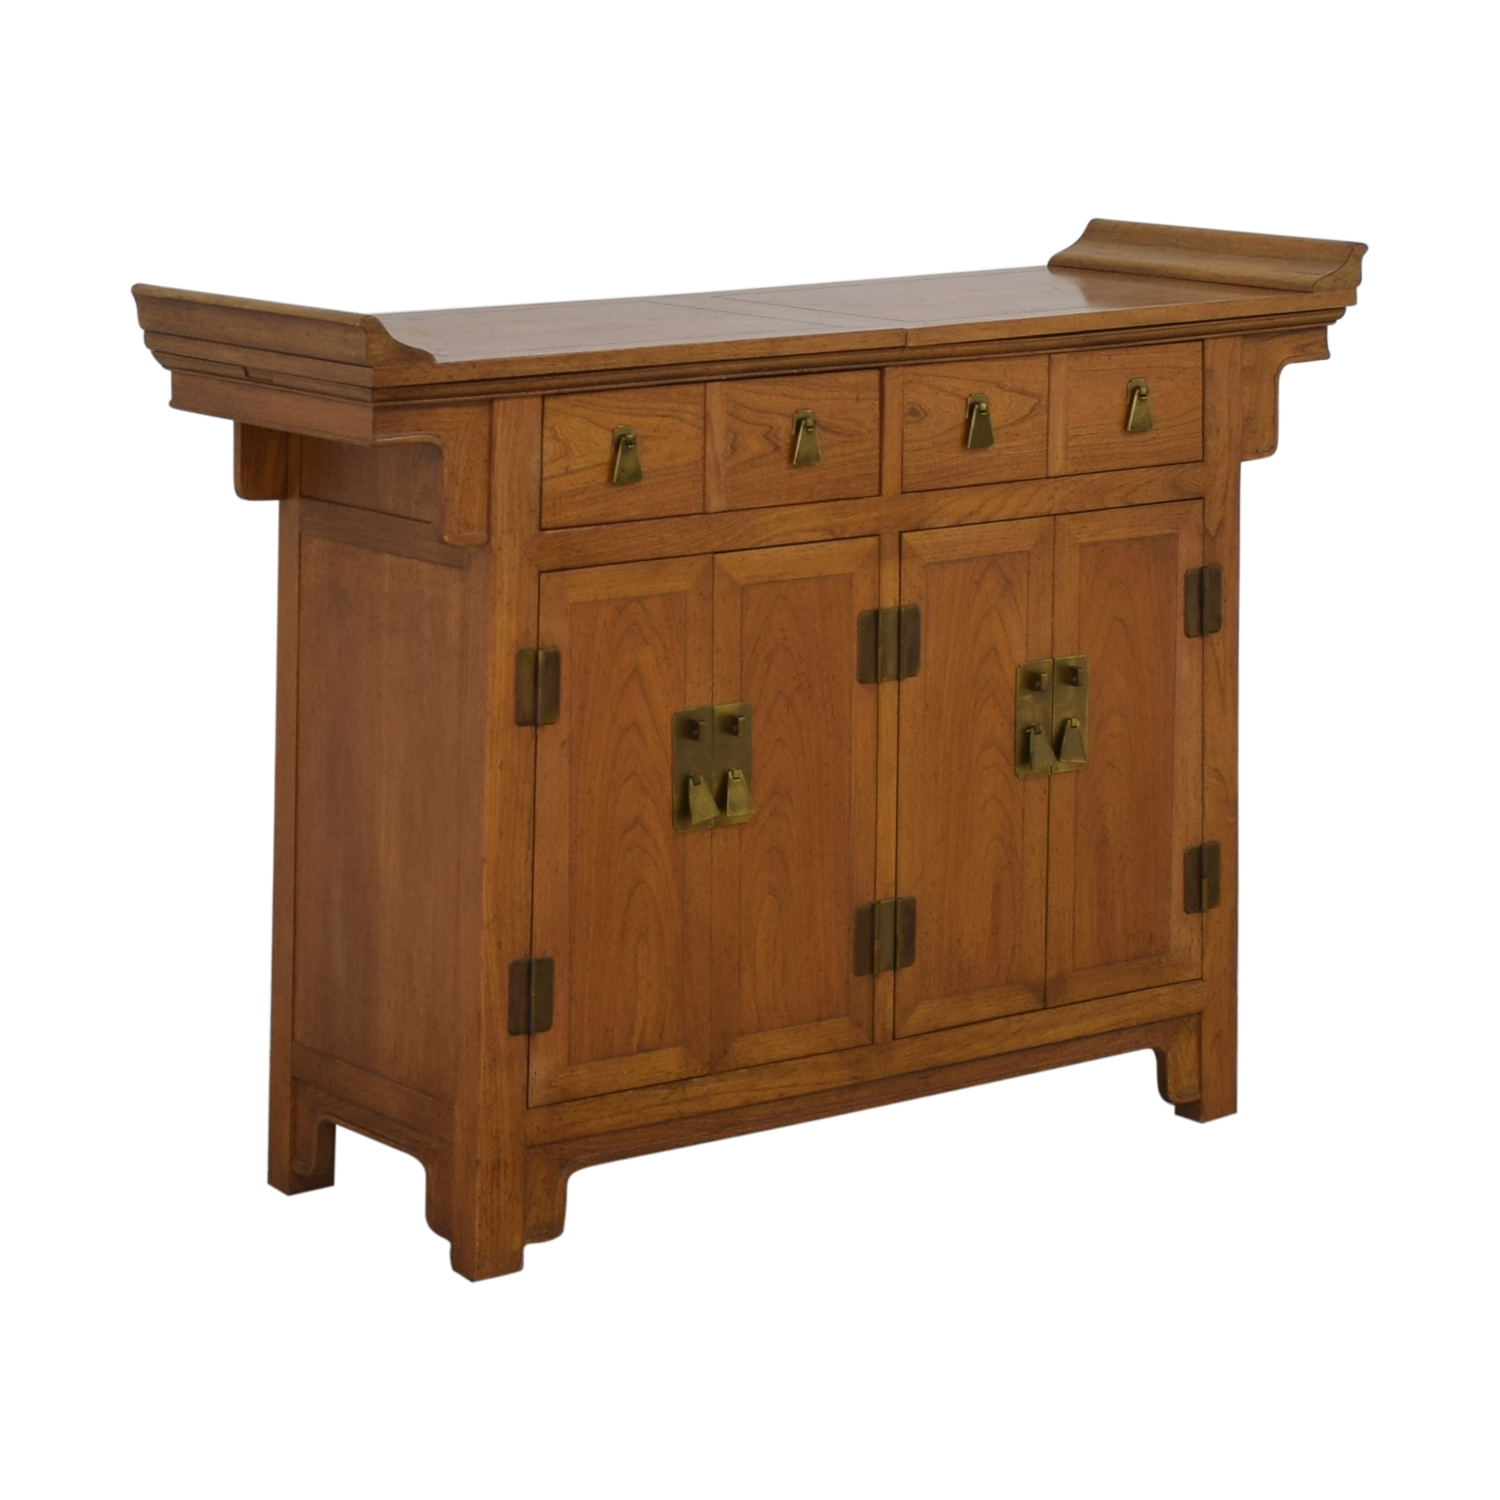 Baker Furniture Michael Taylor for Baker Furniture Bar Cabinet nj